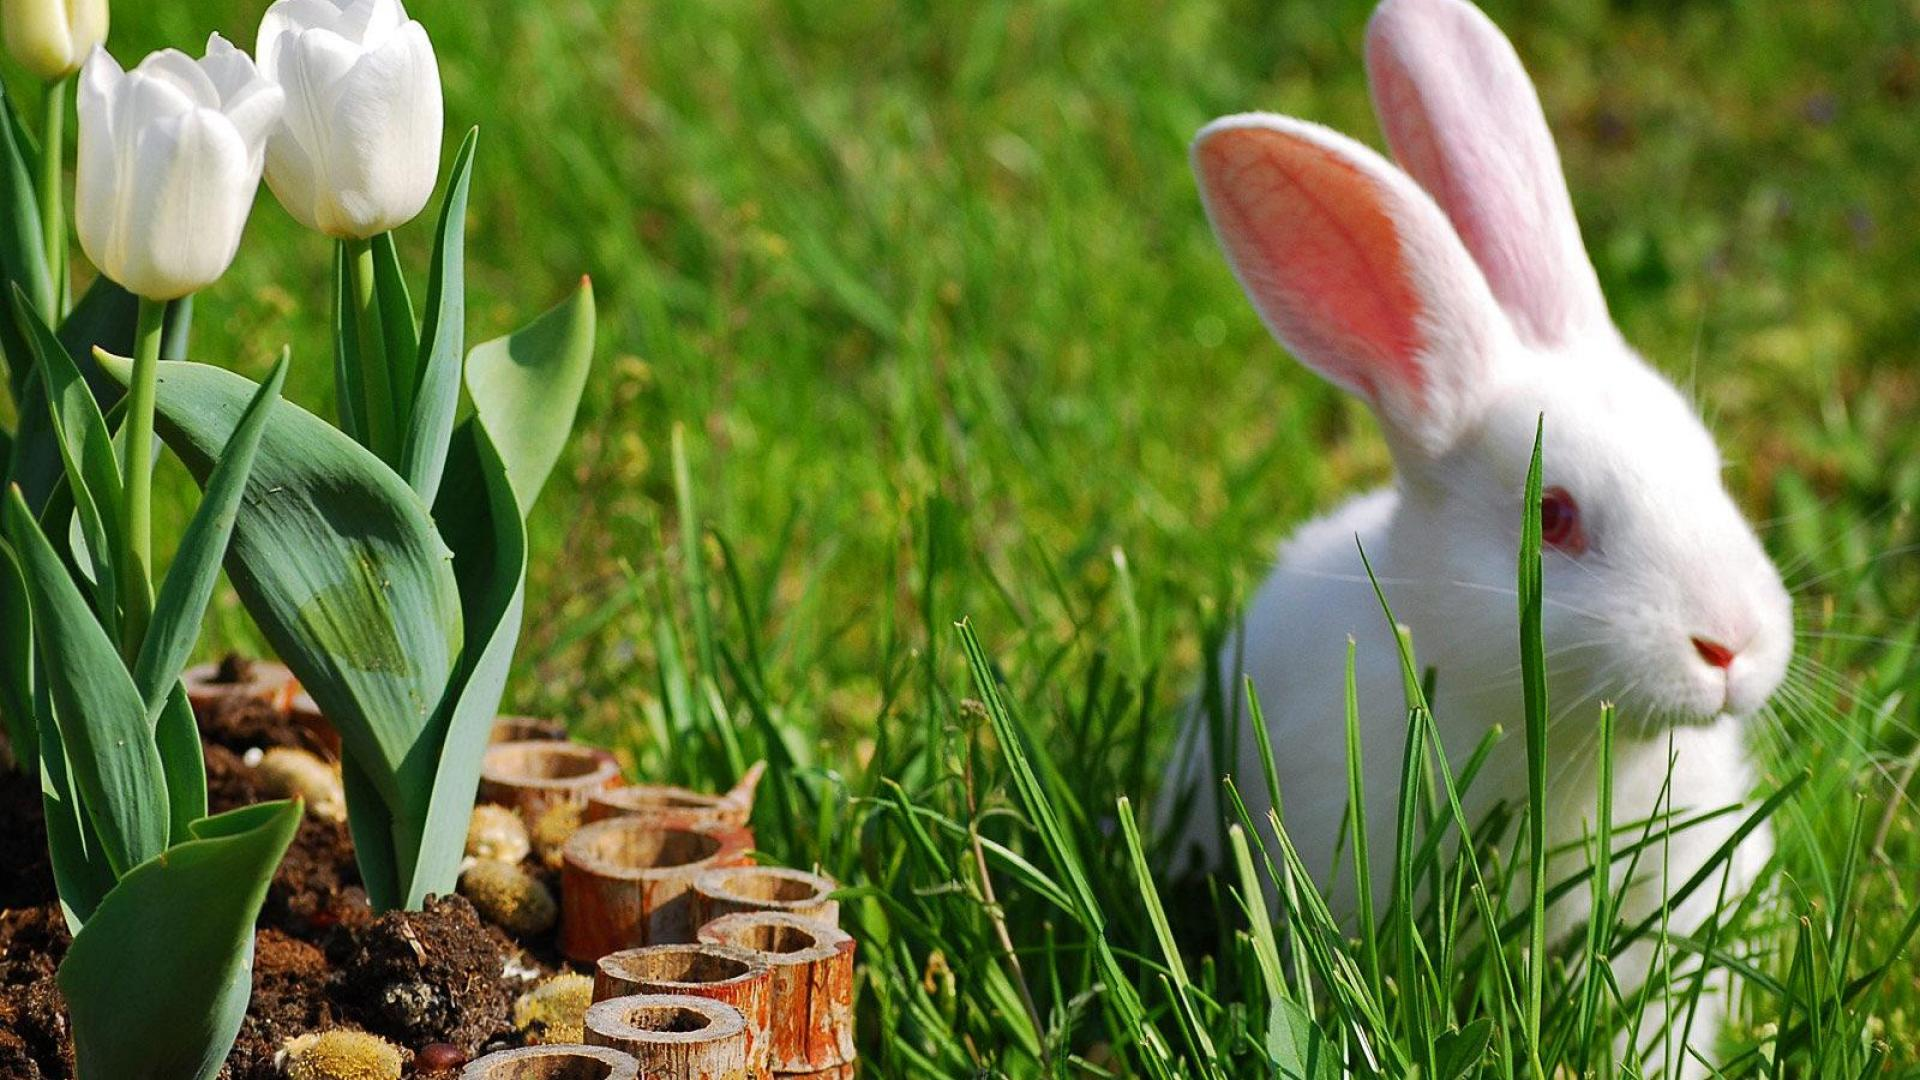 Cute Cats And Dogs Hd Wallpapers White Rabbit With Red Eyes In The Grass